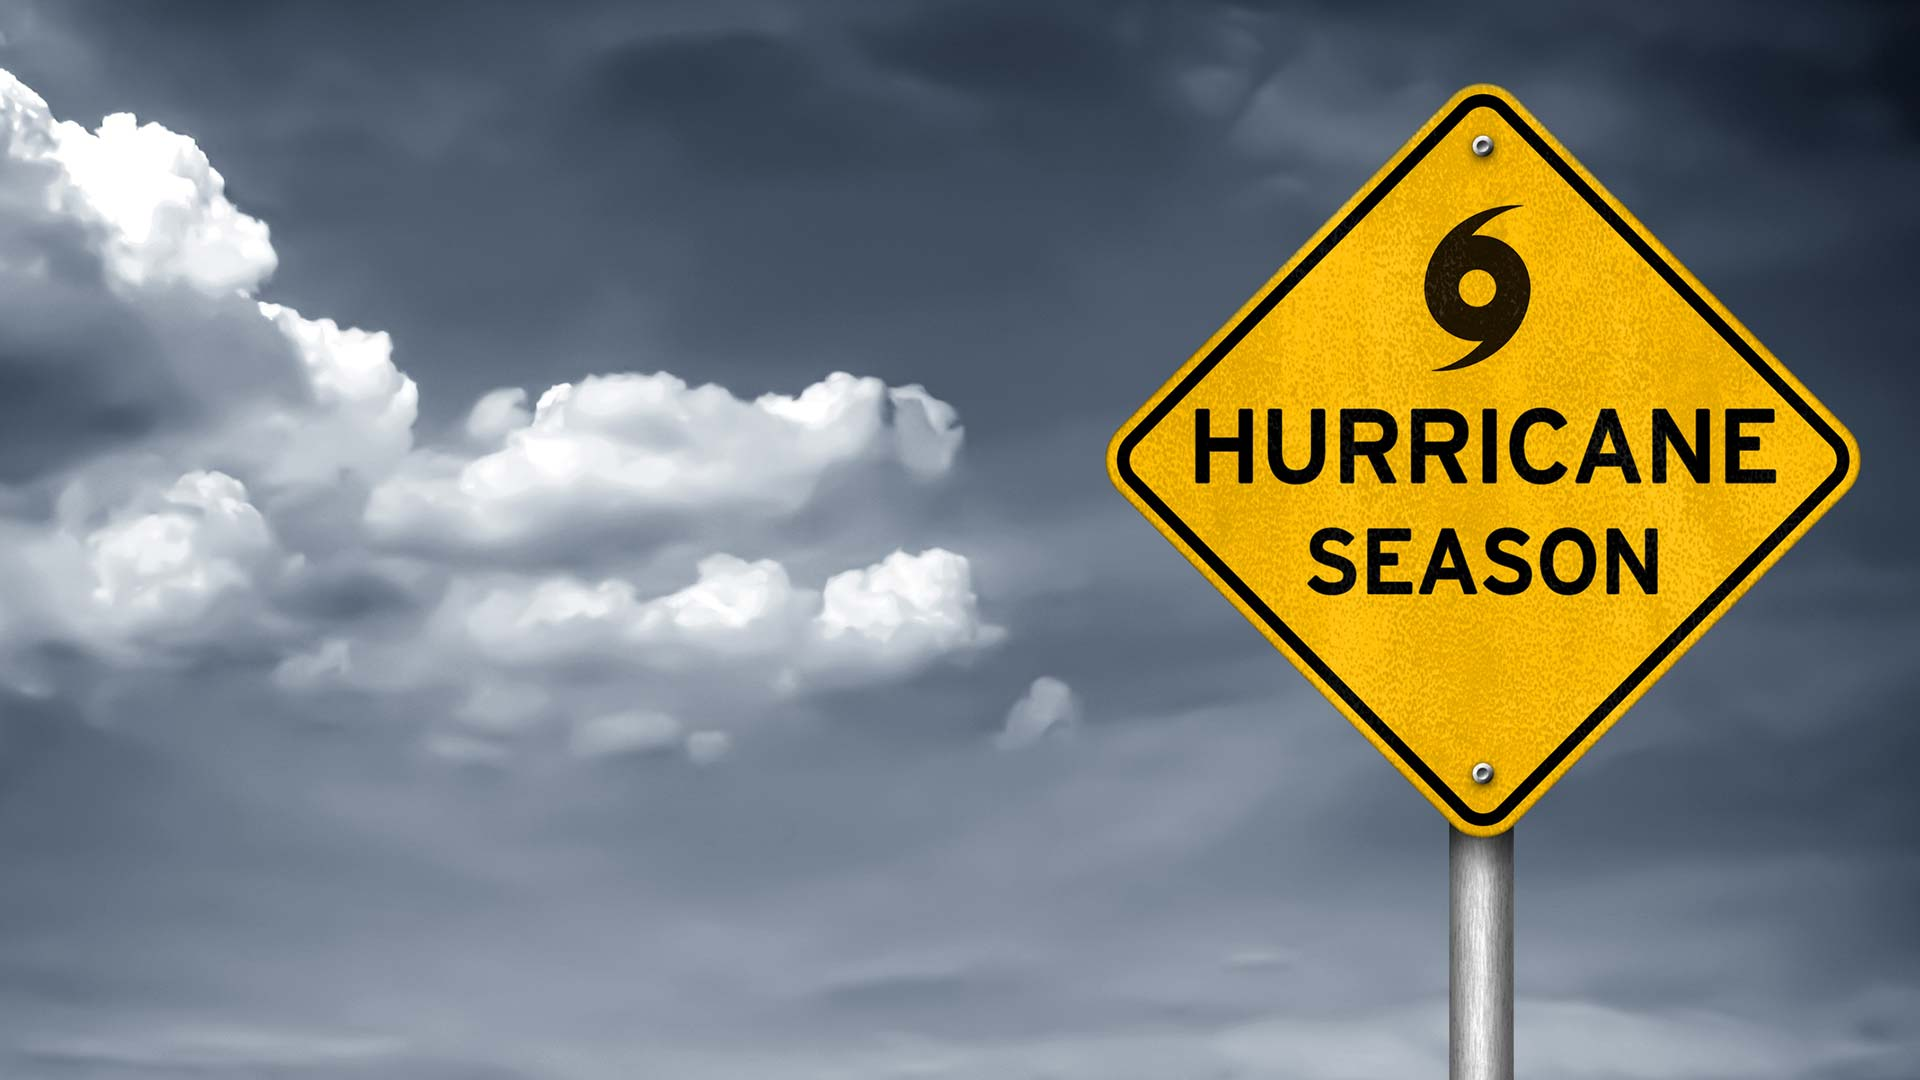 hurricane season sign with storm clouds in the background